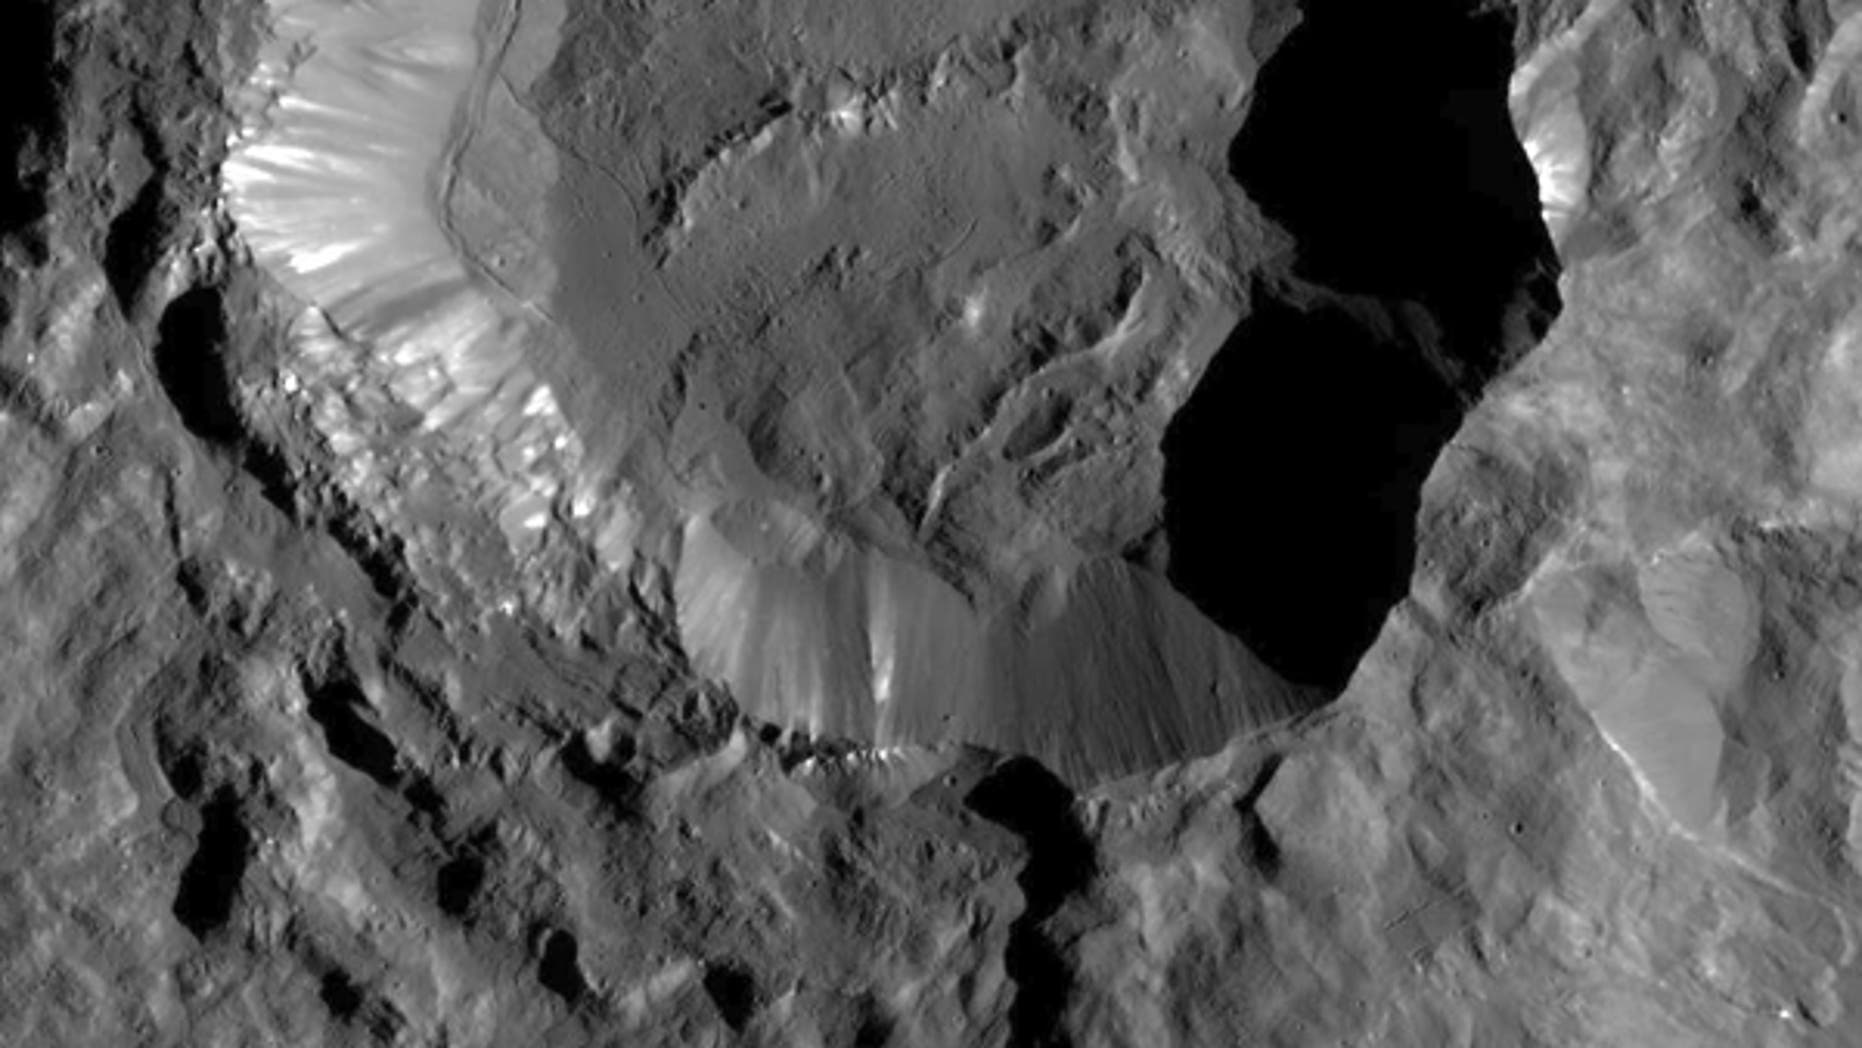 This image from NASA's Dawn spacecraft shows Kupalo Crater, one of the youngest craters on Ceres. (Image Credit: NASA/JPL-Caltech/UCLA/MPS/DLR/IDA)